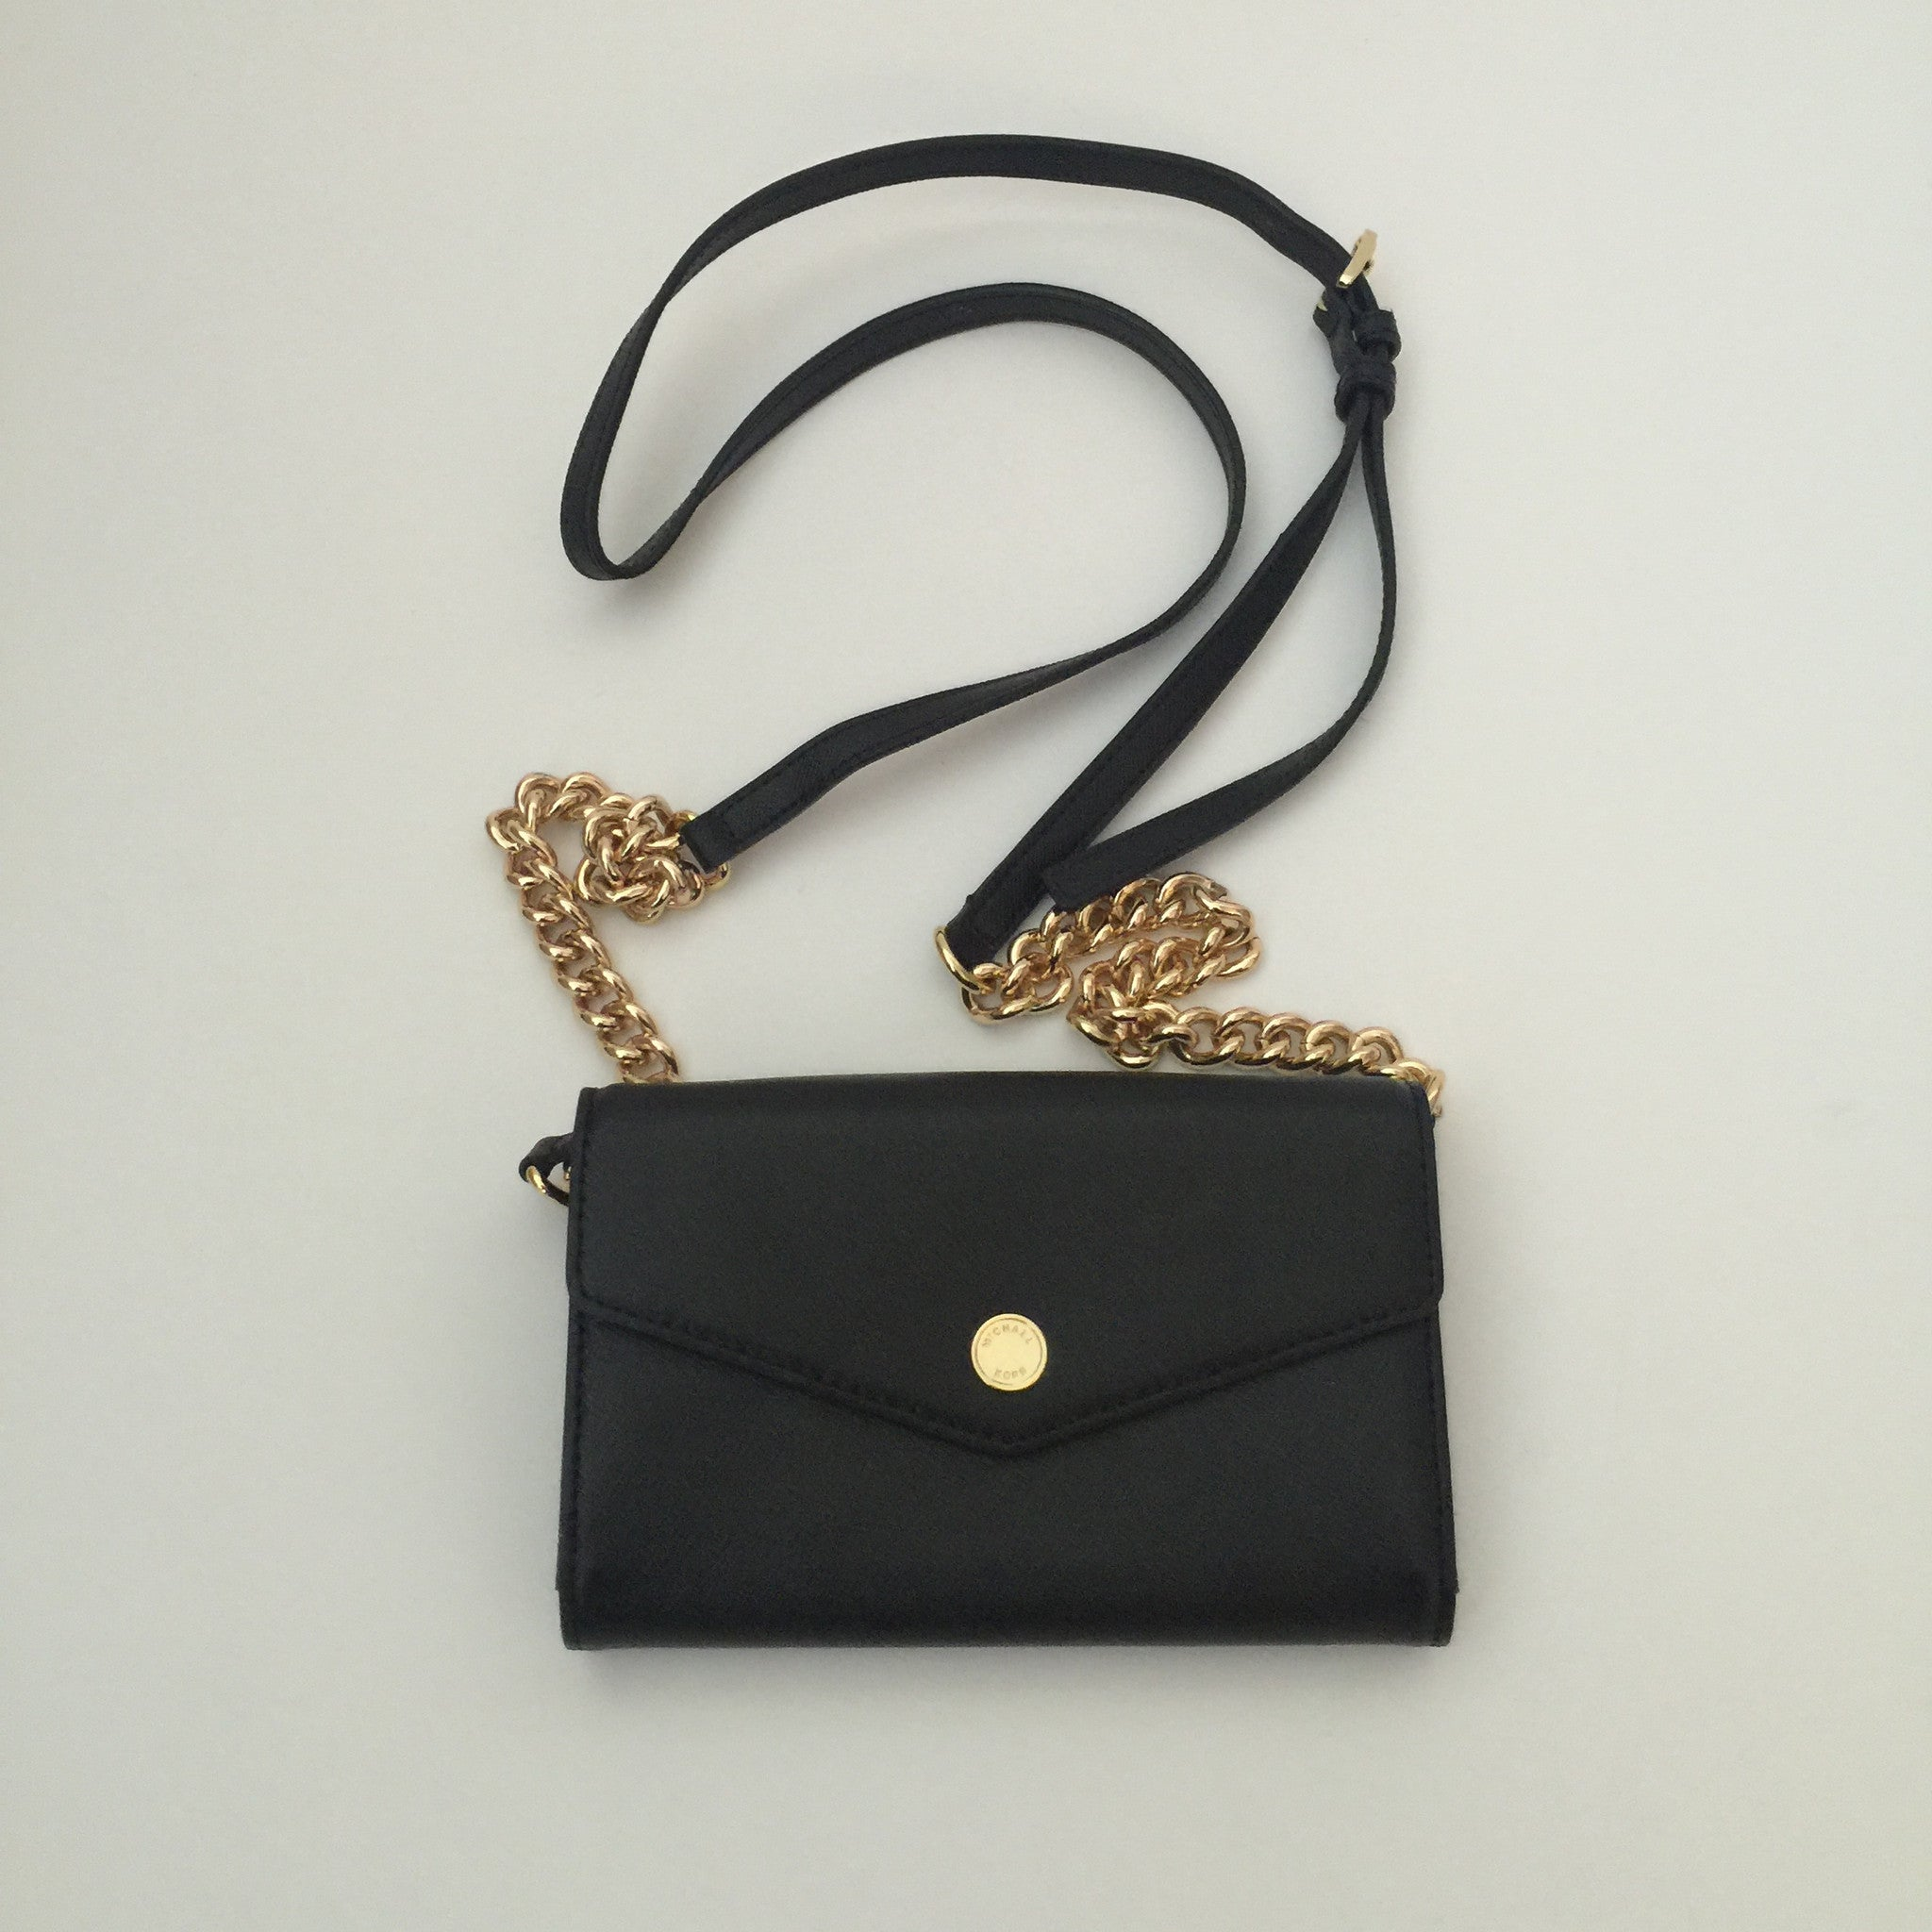 Authentic MICHAEL KORS Wallet on Chain